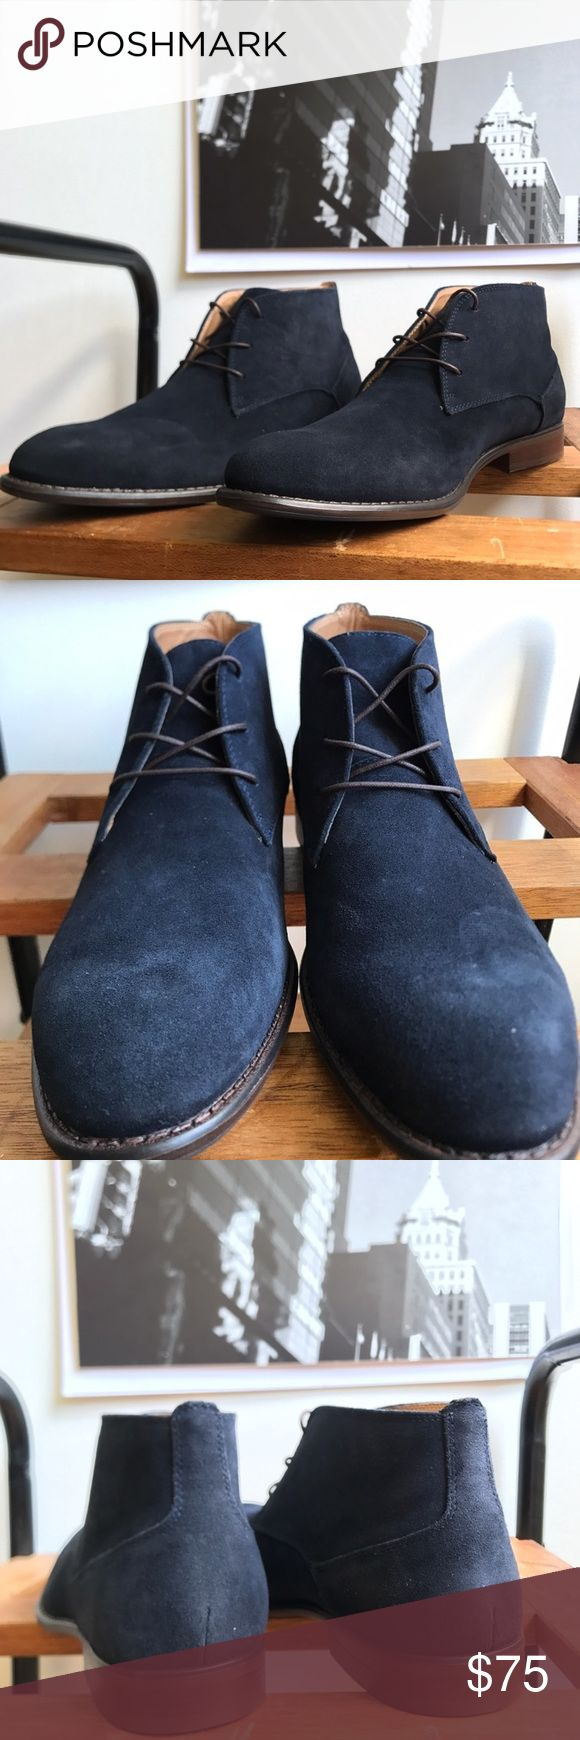 🙌🏾Brand New Aldo Chukka Boot #0193AO Brand New Aldo navy blue chukka genuine leather boot. The outside and inside of the boot is leather. #men #aldo #chelseaboot #boot #menstyle #streetwear #fashion #blue #chukka Aldo Shoes Chukka Boots